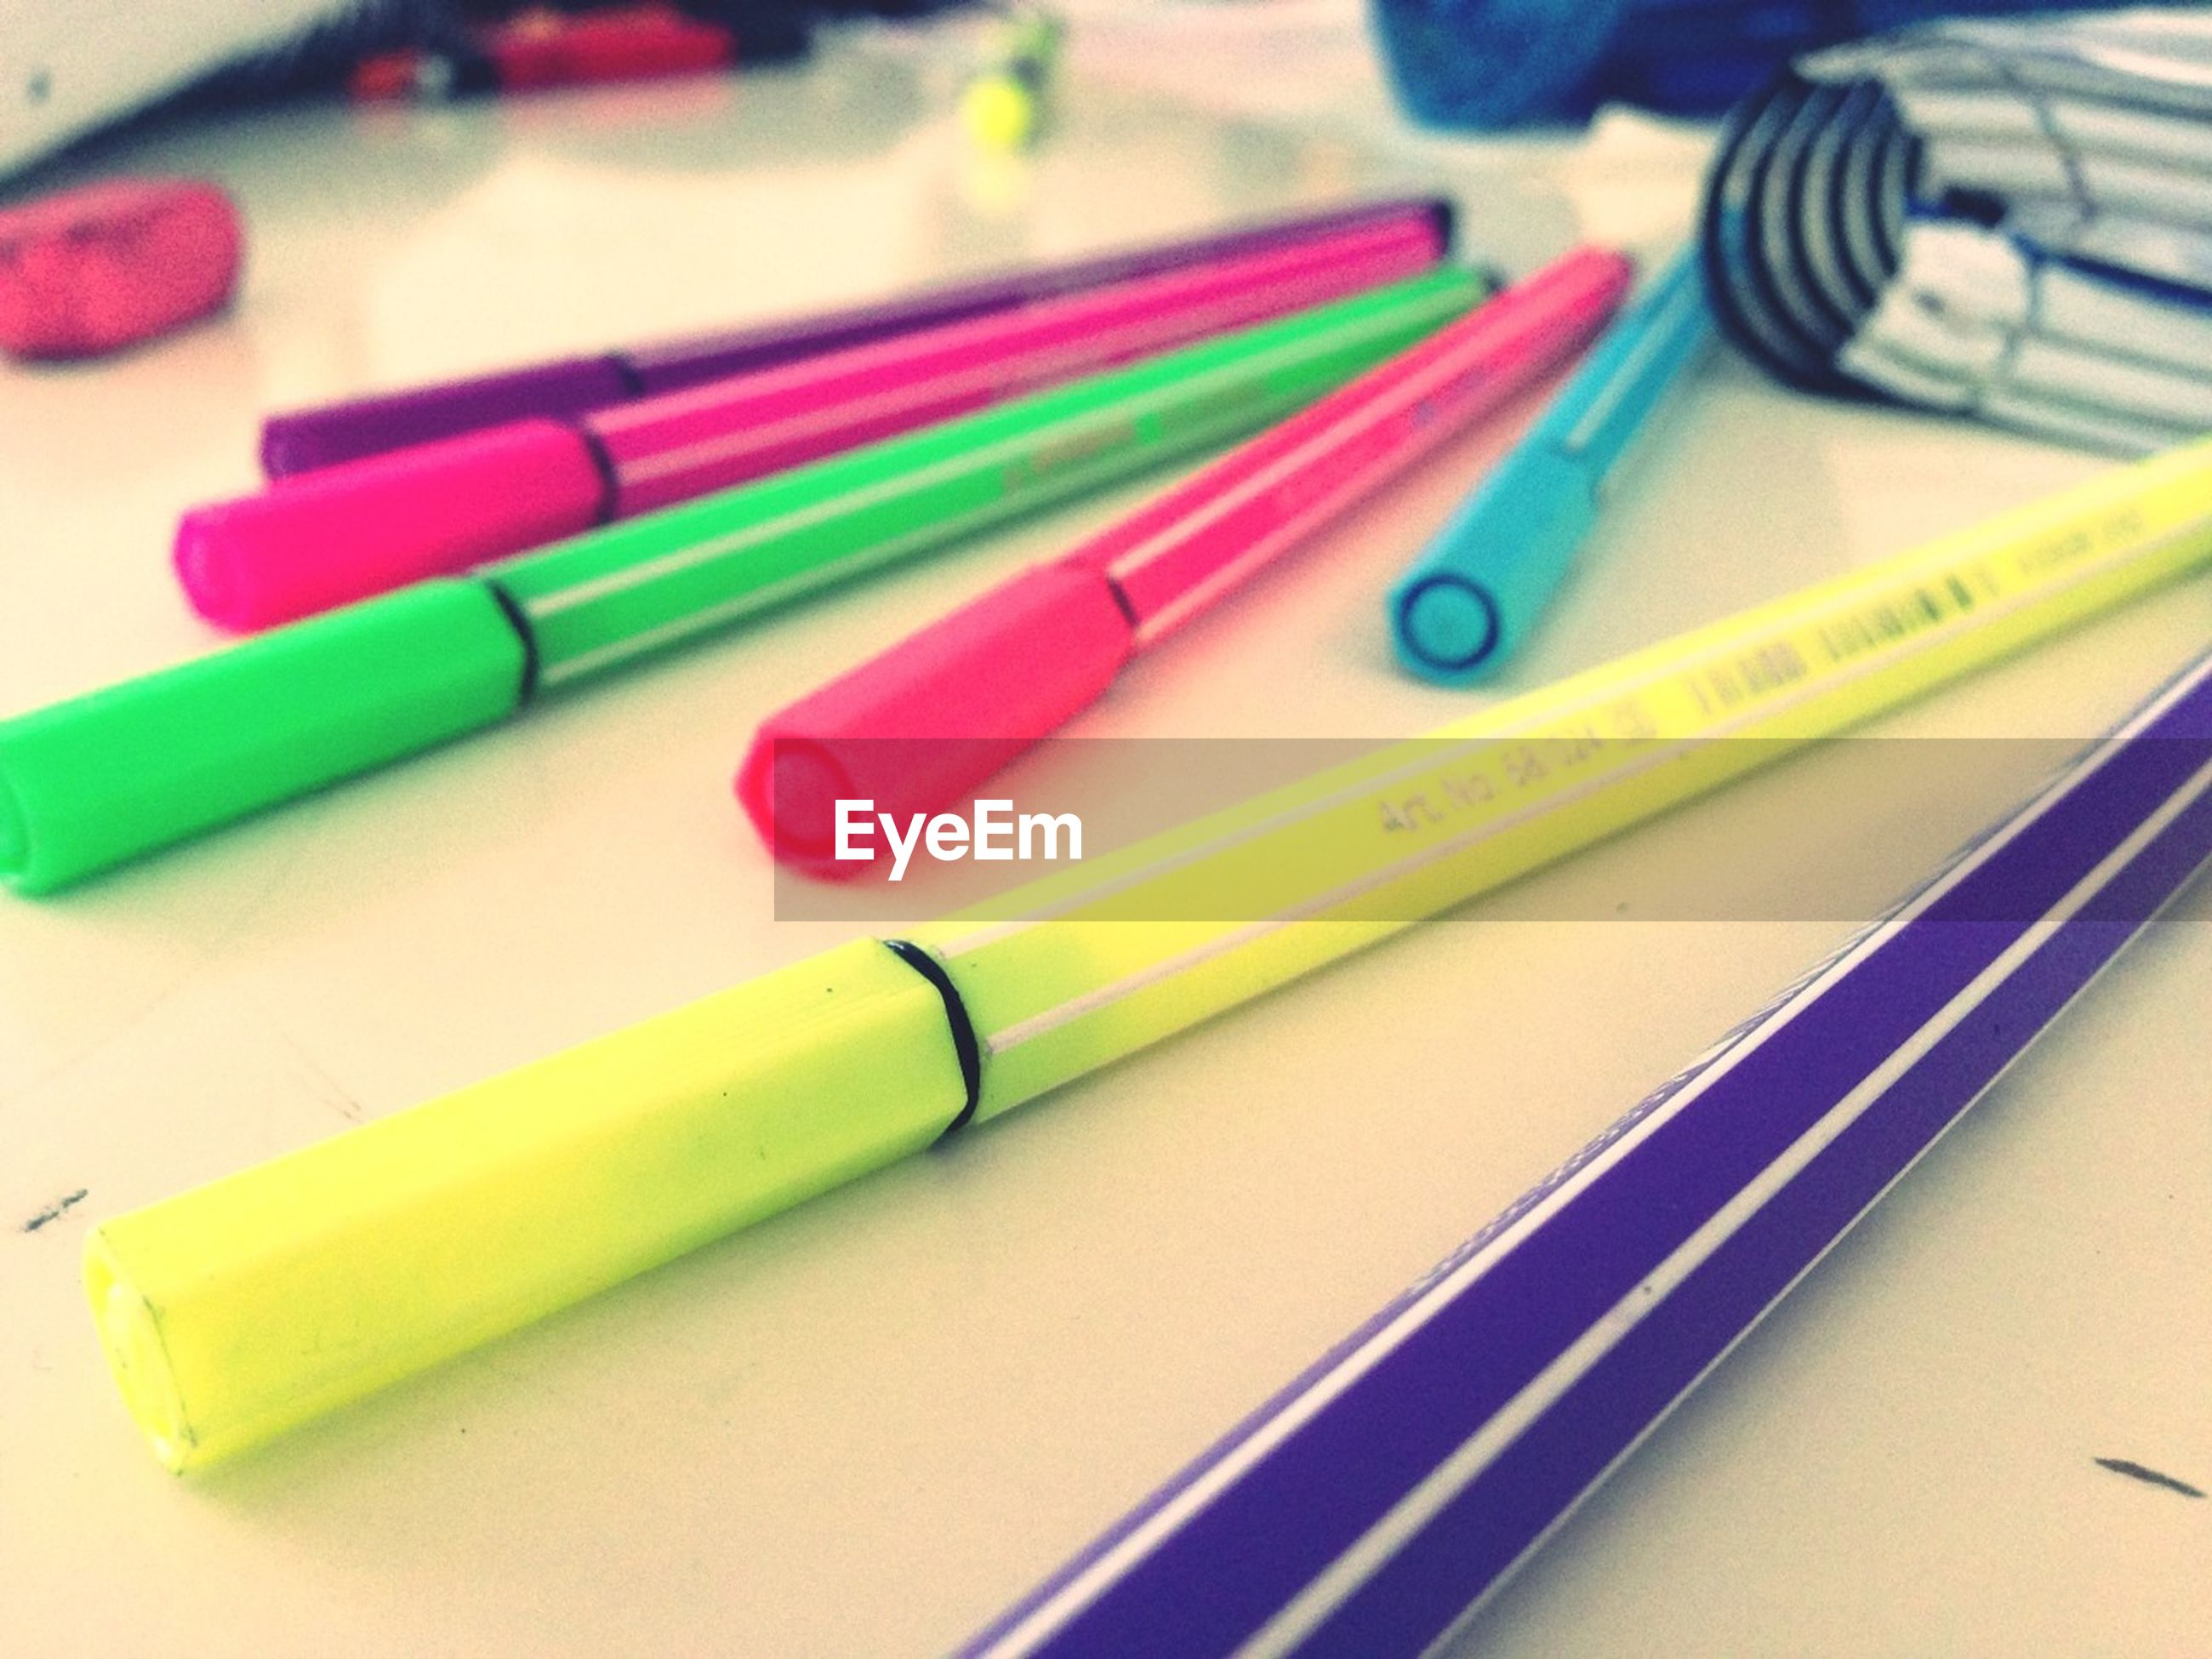 indoors, multi colored, still life, pencil, variation, close-up, colored pencil, large group of objects, pen, colorful, choice, education, high angle view, office supply, plastic, studio shot, writing instrument, no people, table, yellow